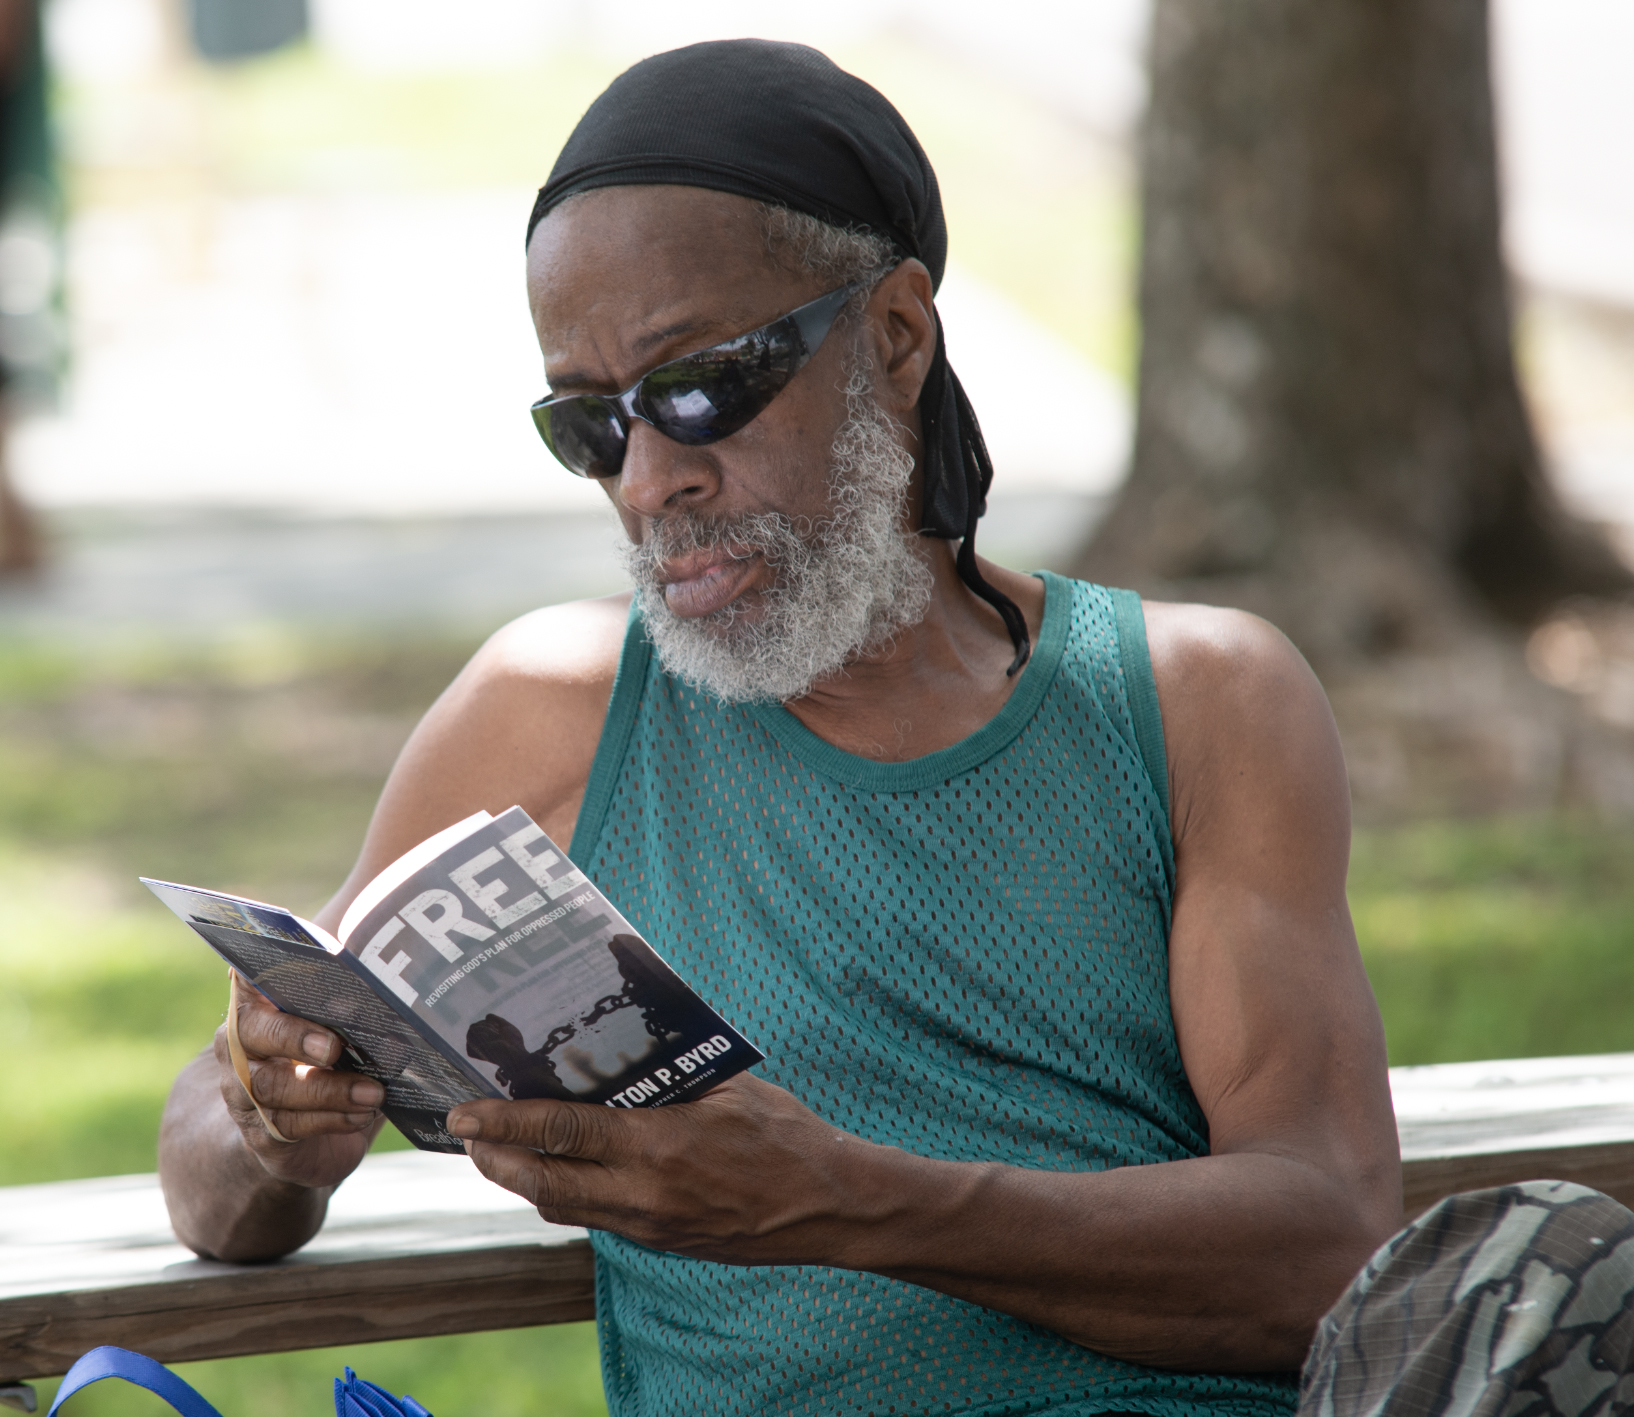 Community member in Miami-area reads a copy of FREE: Revisiting God's Plan for Oppressed People, which was distributed by local church members.